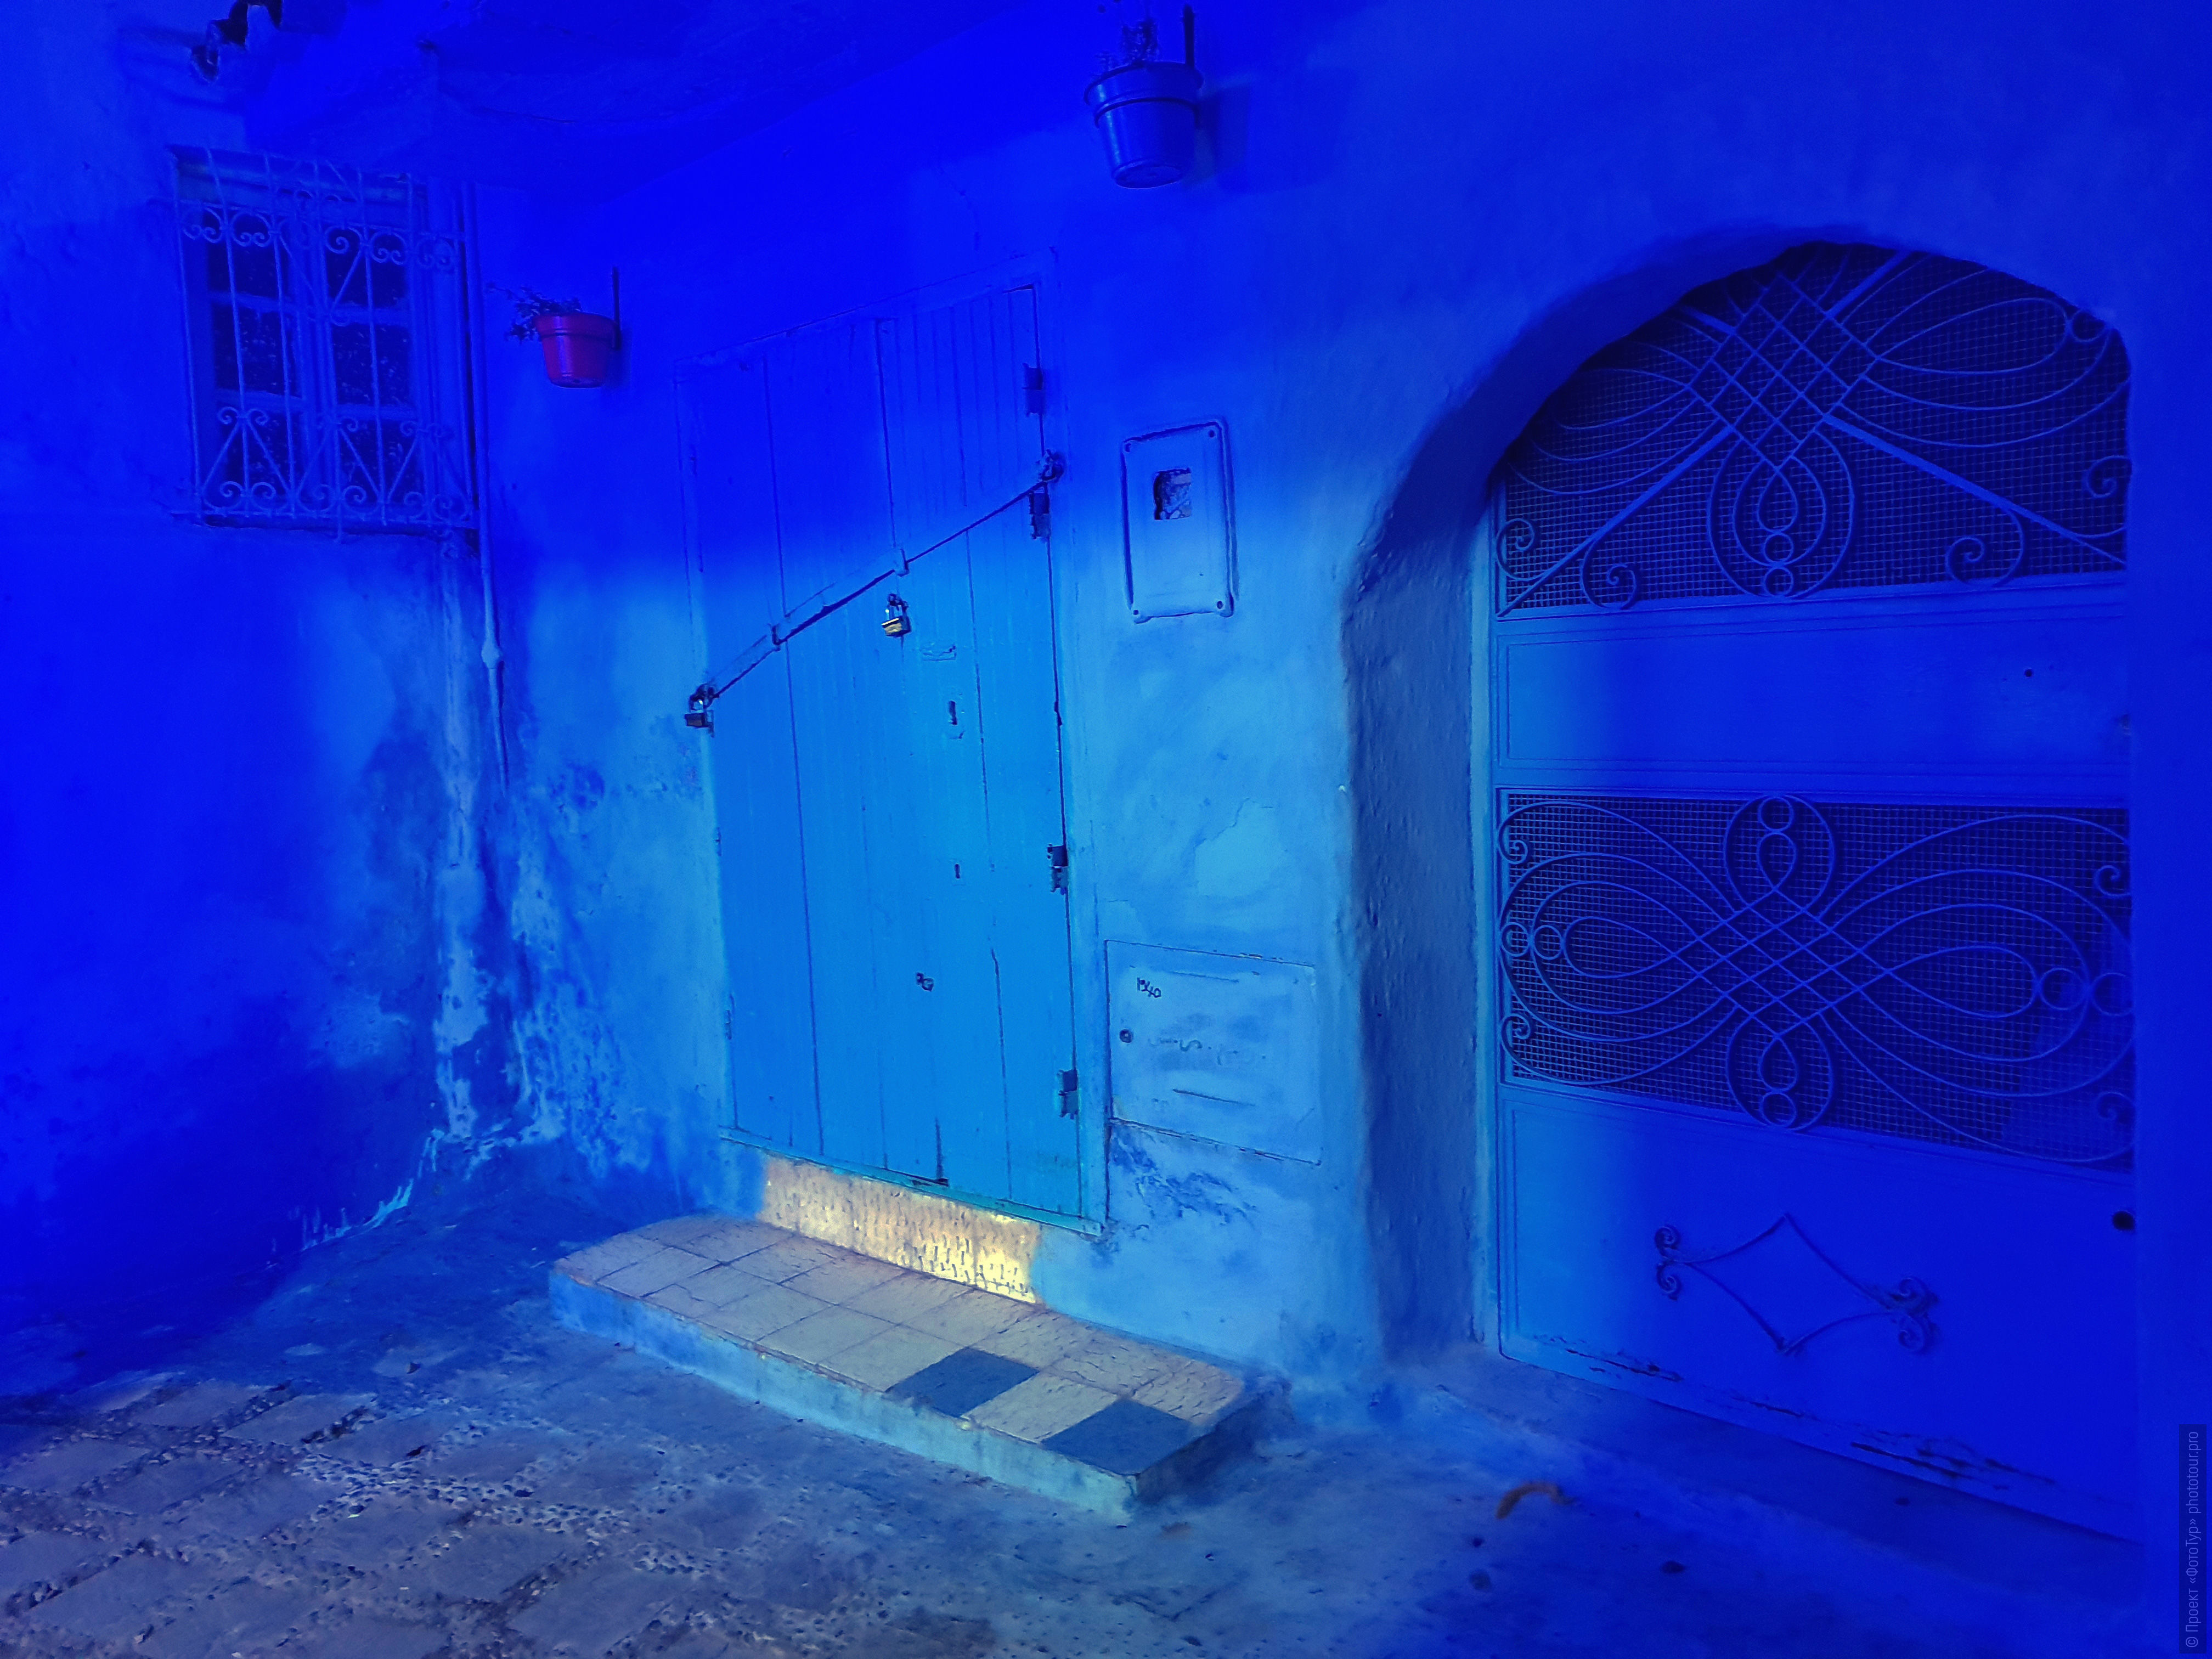 The blue of the medina of Chefchaouen, Morocco. Adventure photo tour: medina, cascades, sands and ports of Morocco, April 4 - 17, 2020.